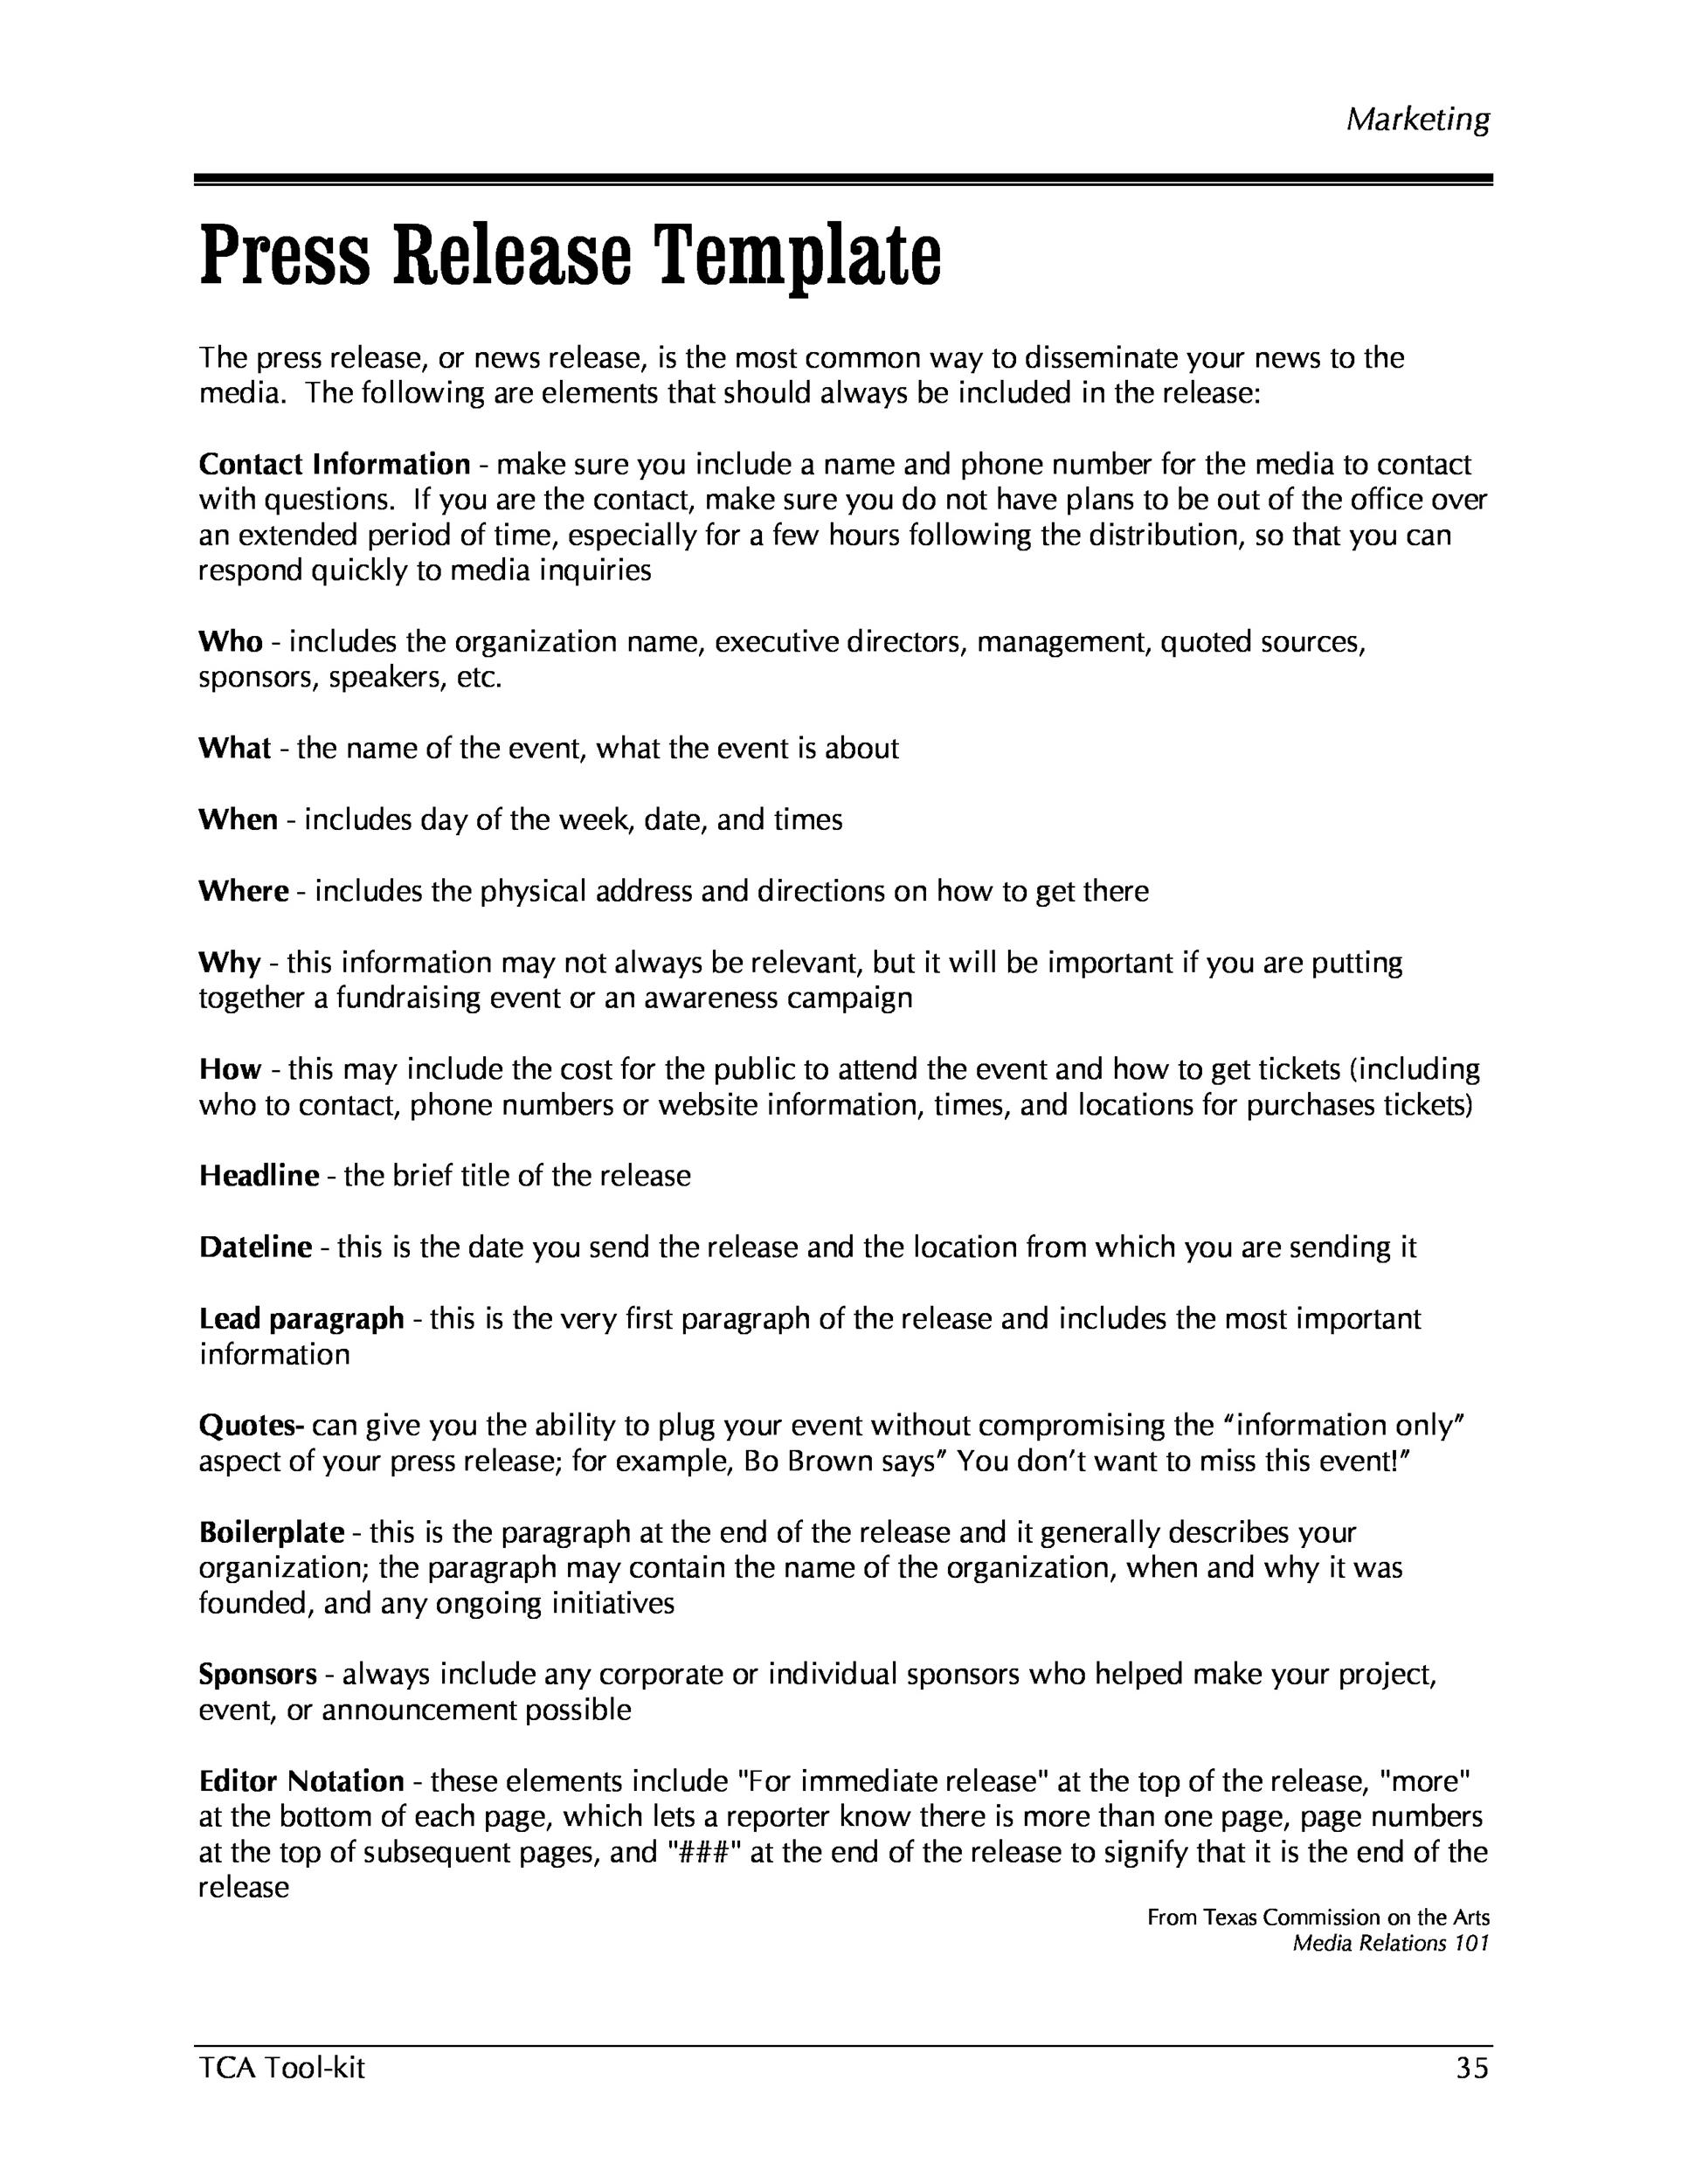 Free Press release template 42